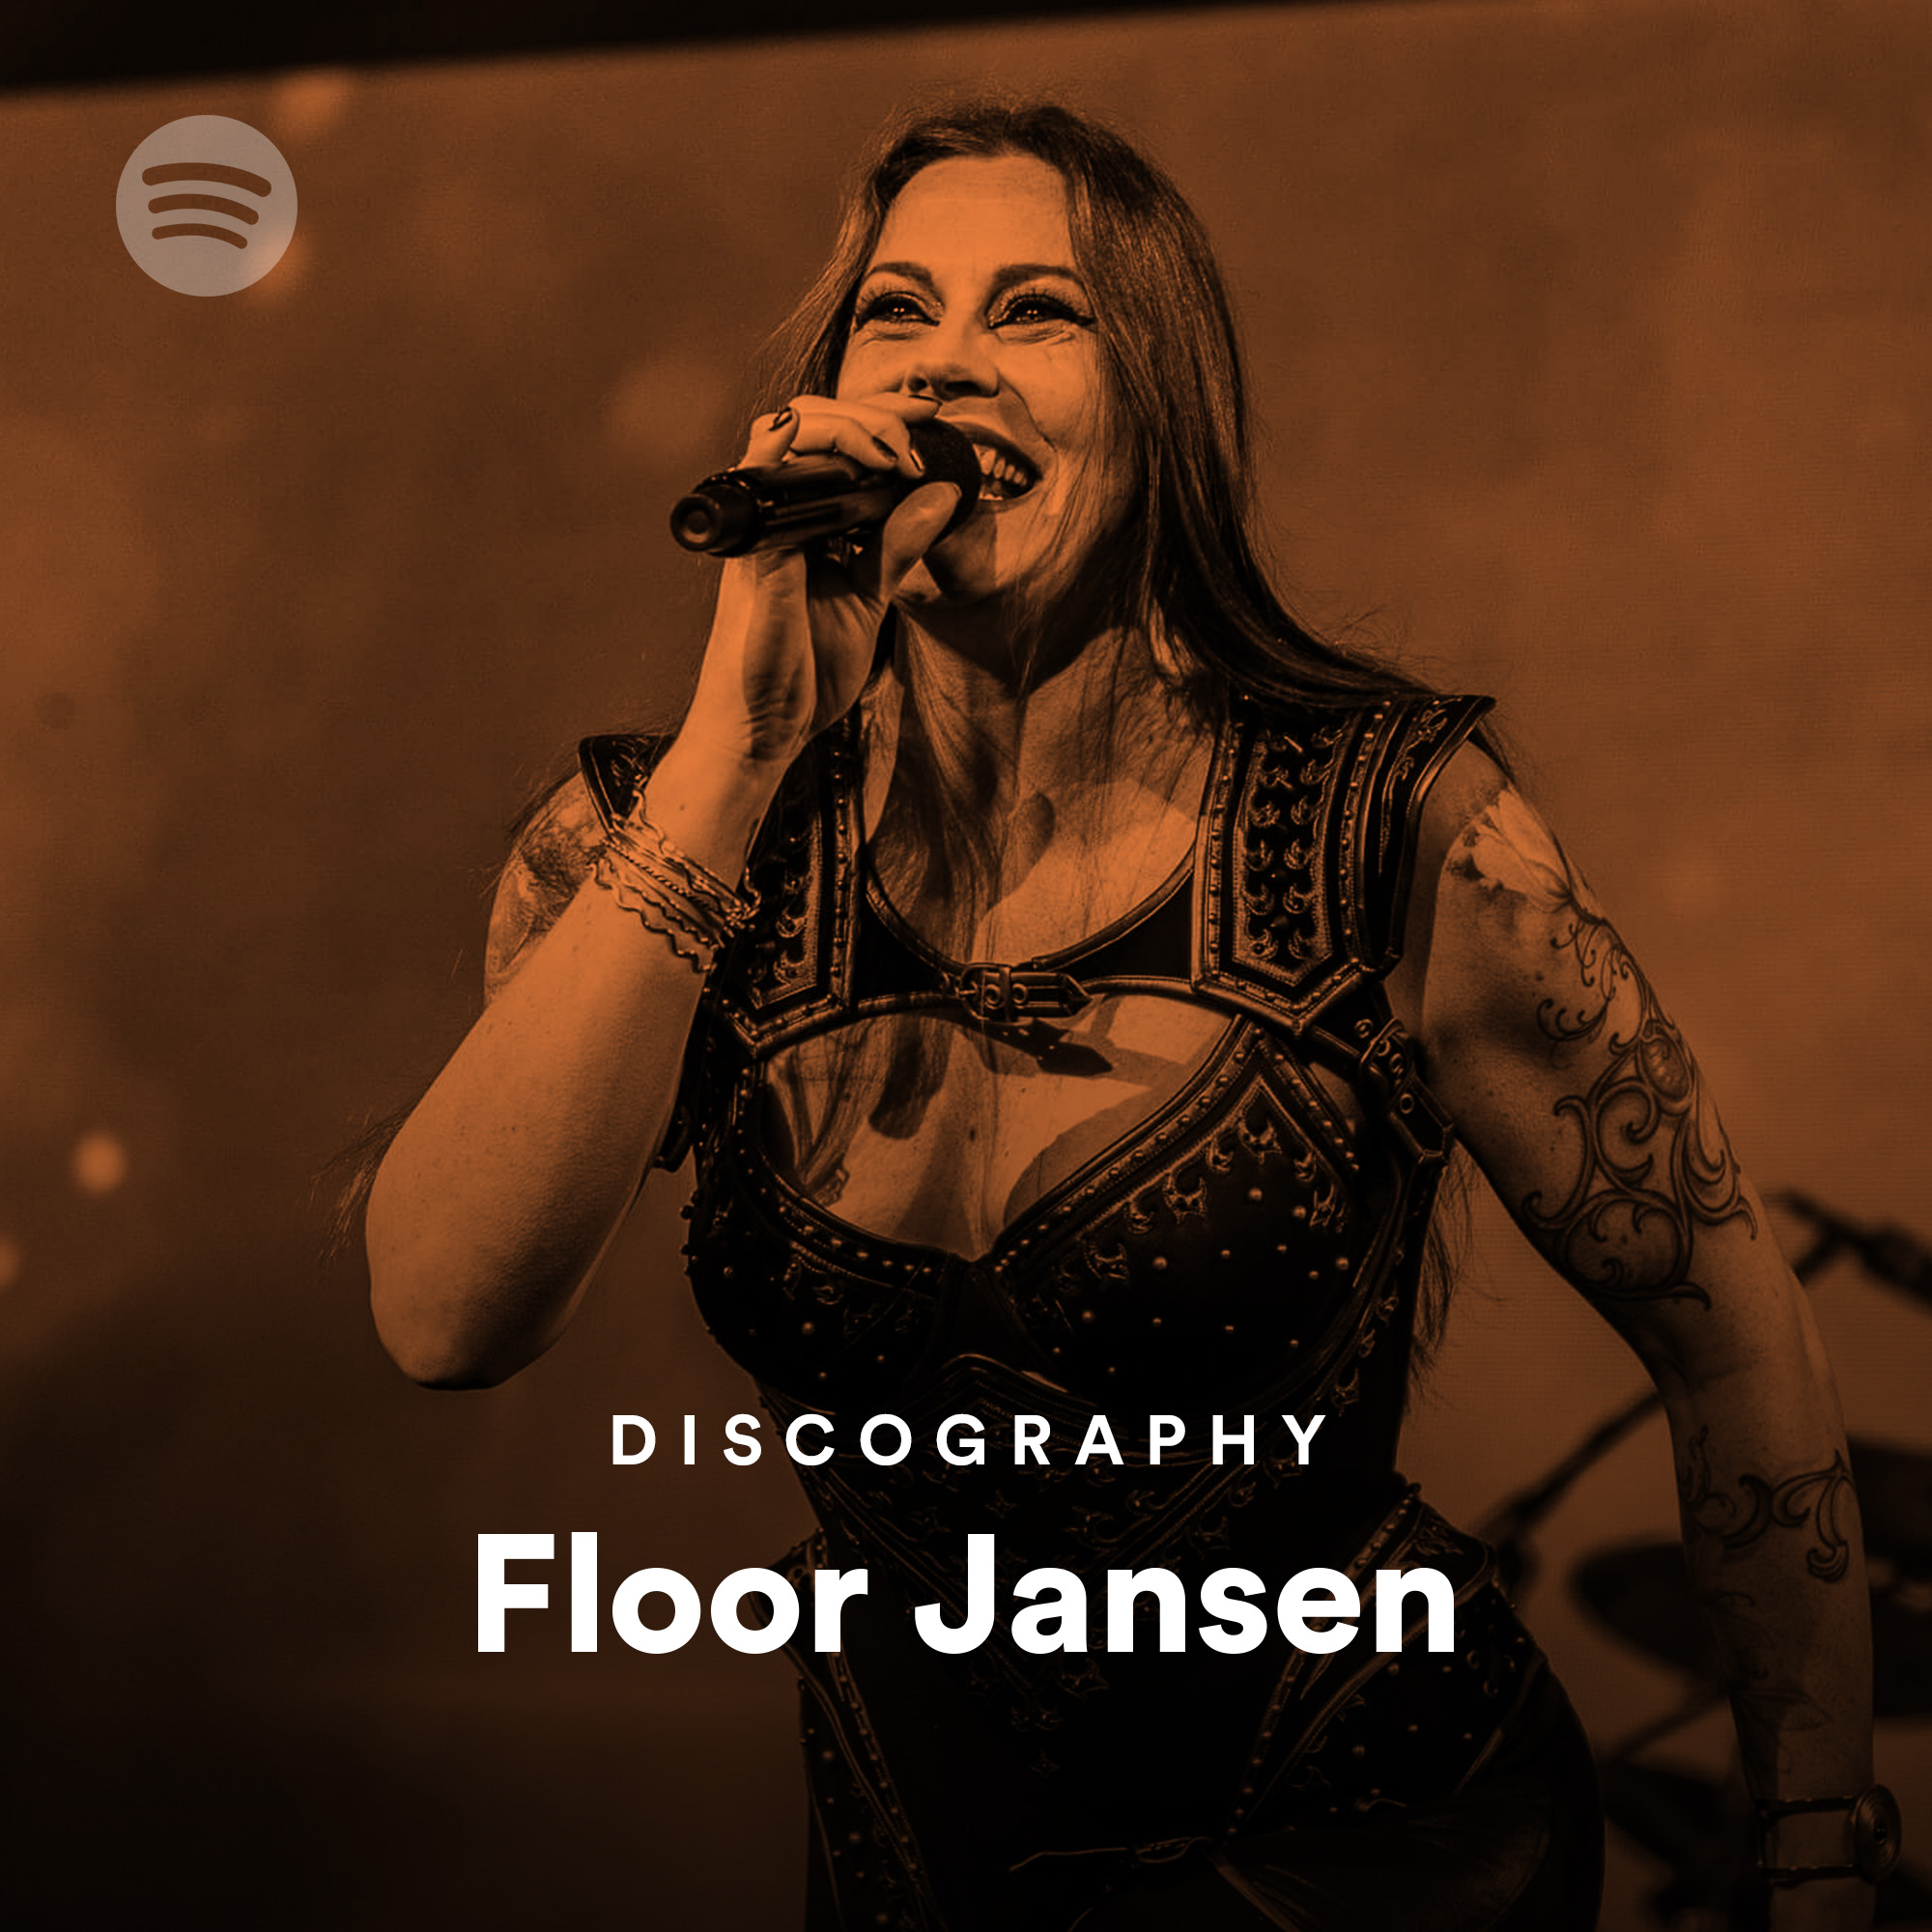 Floor Jansen Discography Spotify Playlist